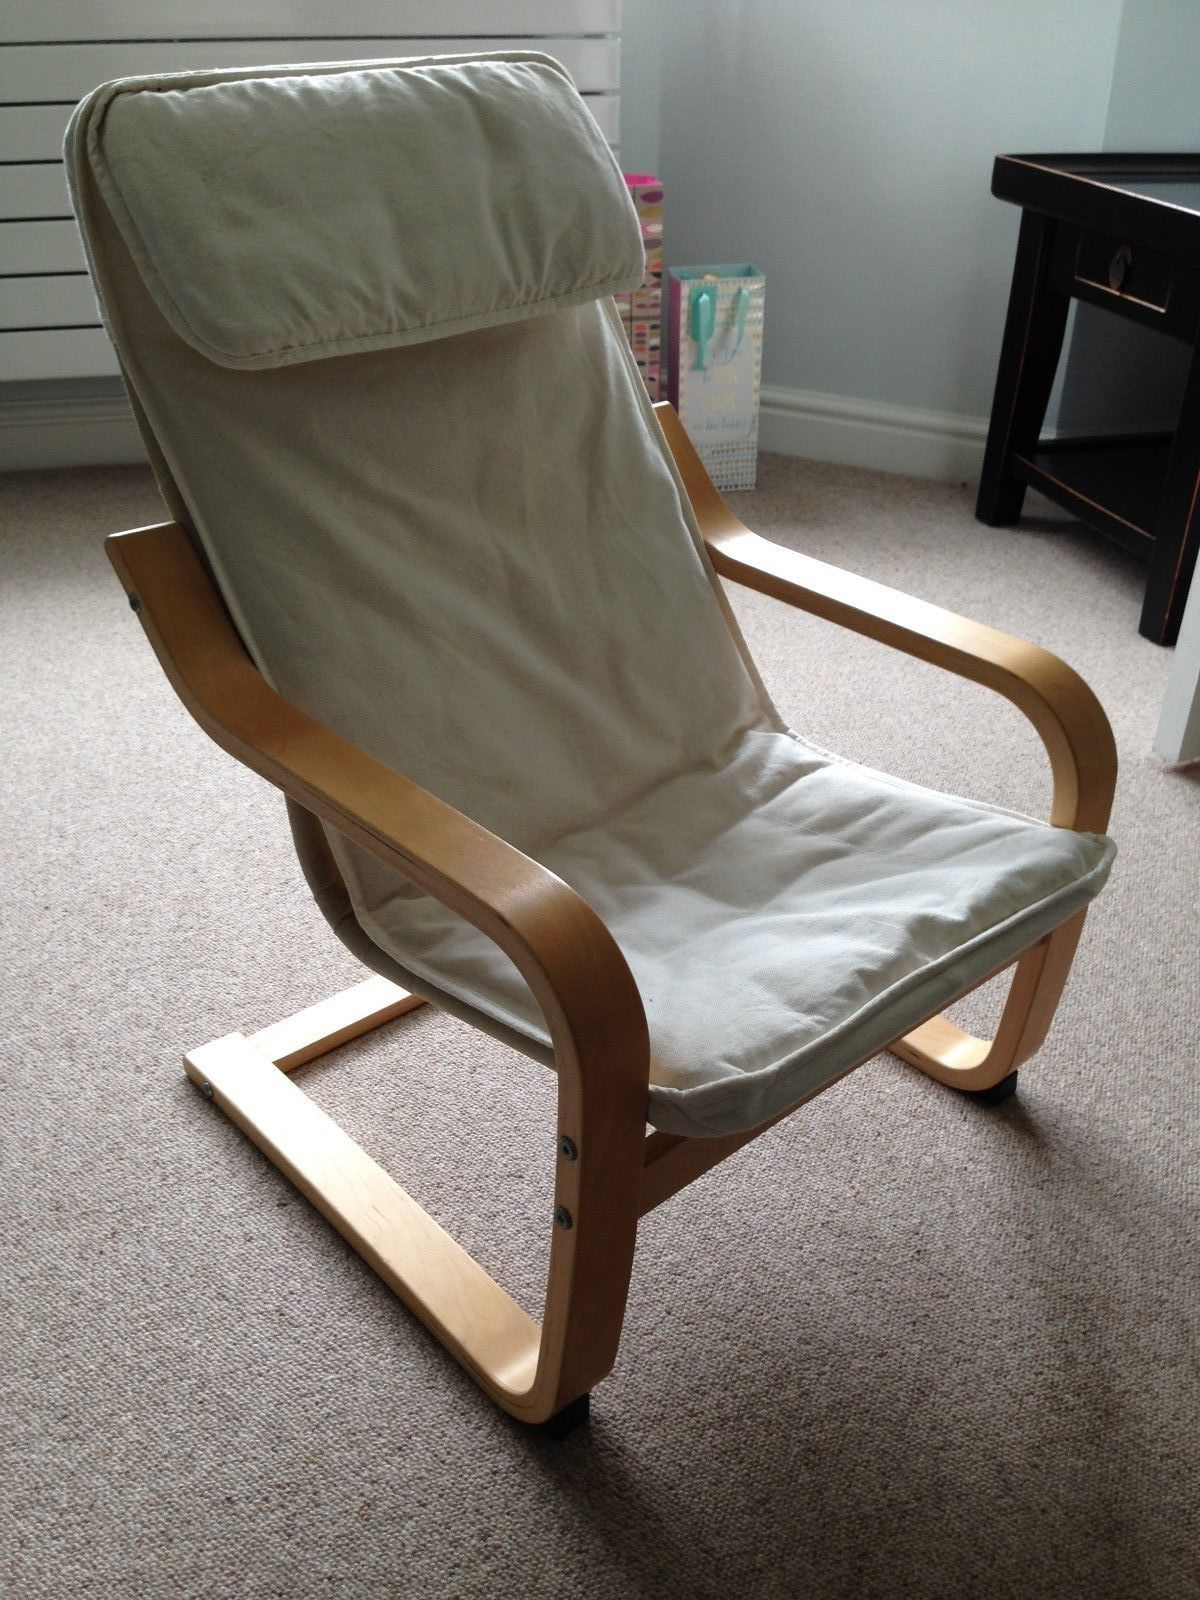 ikea-poang-childrens-armchair